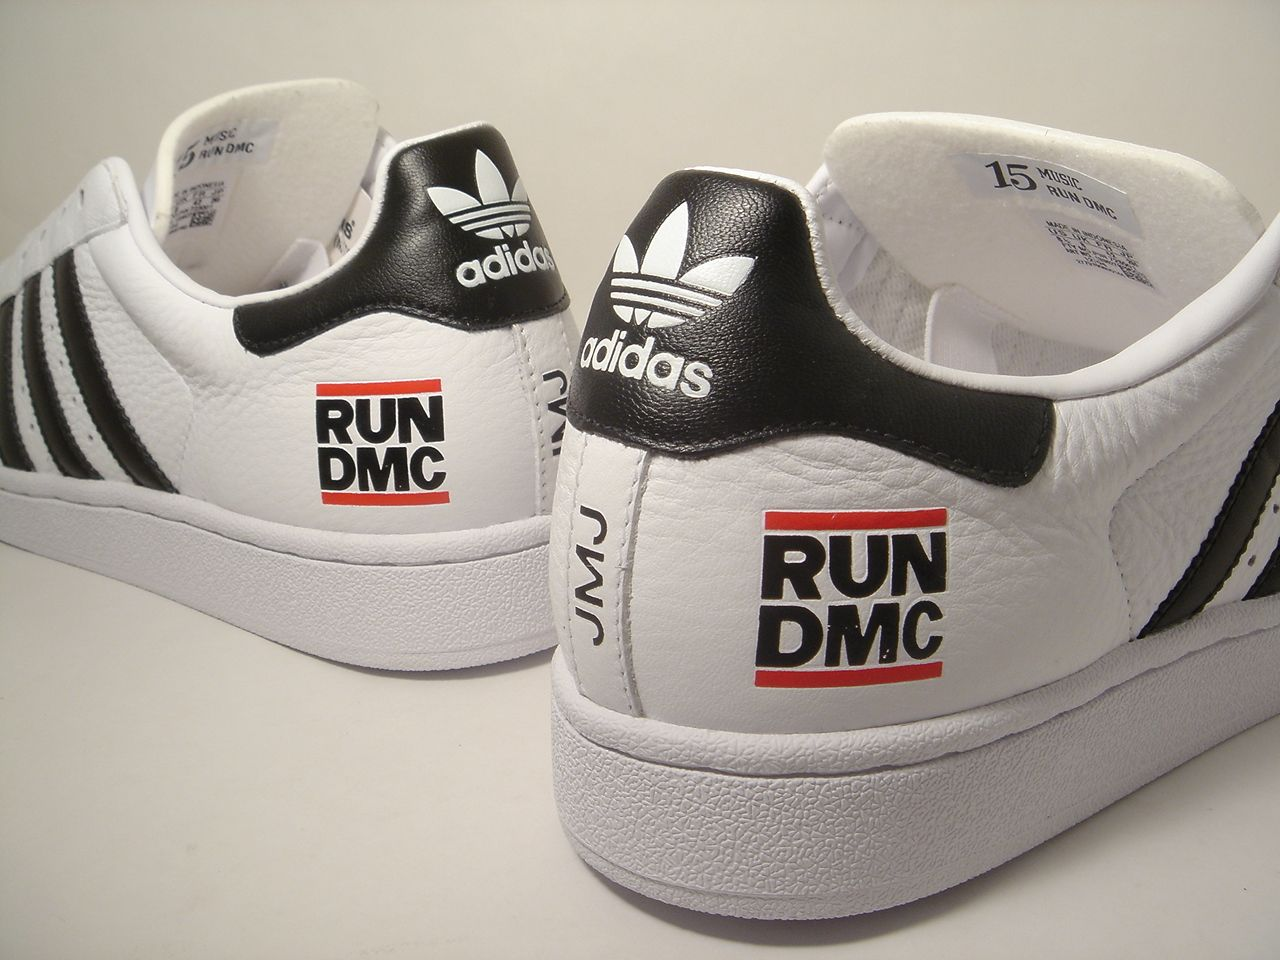 Adidas SuperStar 35th Anniversary – RUN DMC